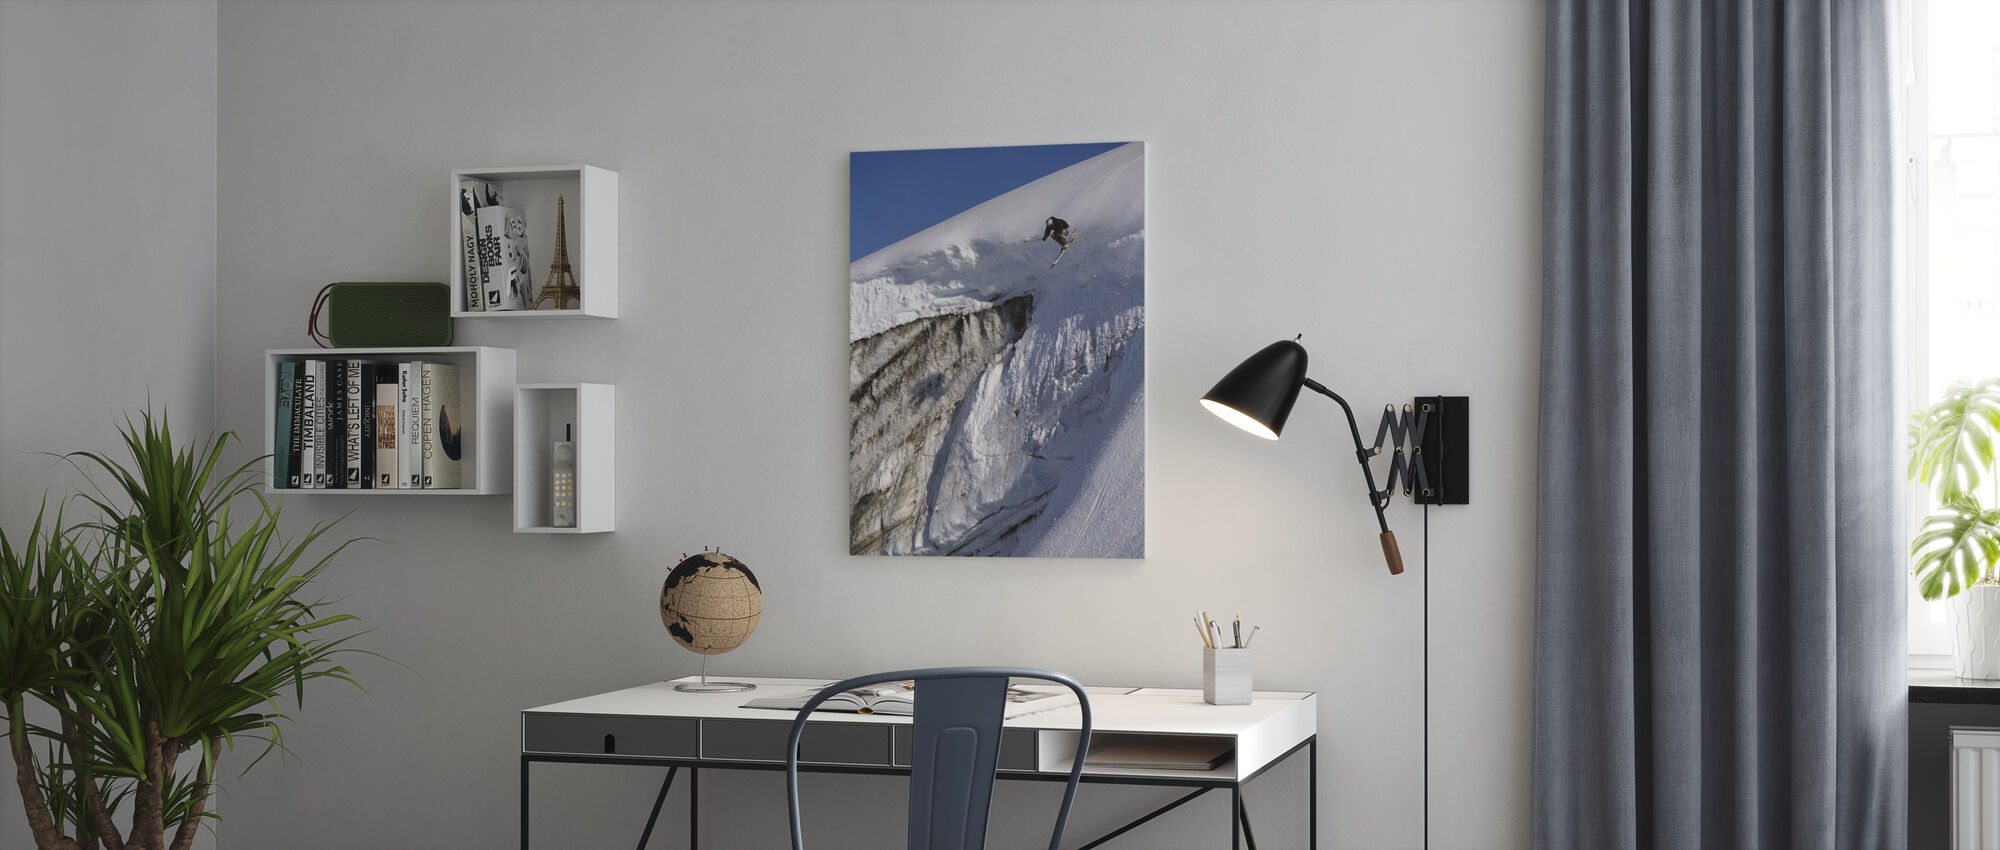 Skiing on the Apussuit Glacier - Canvas print - Office